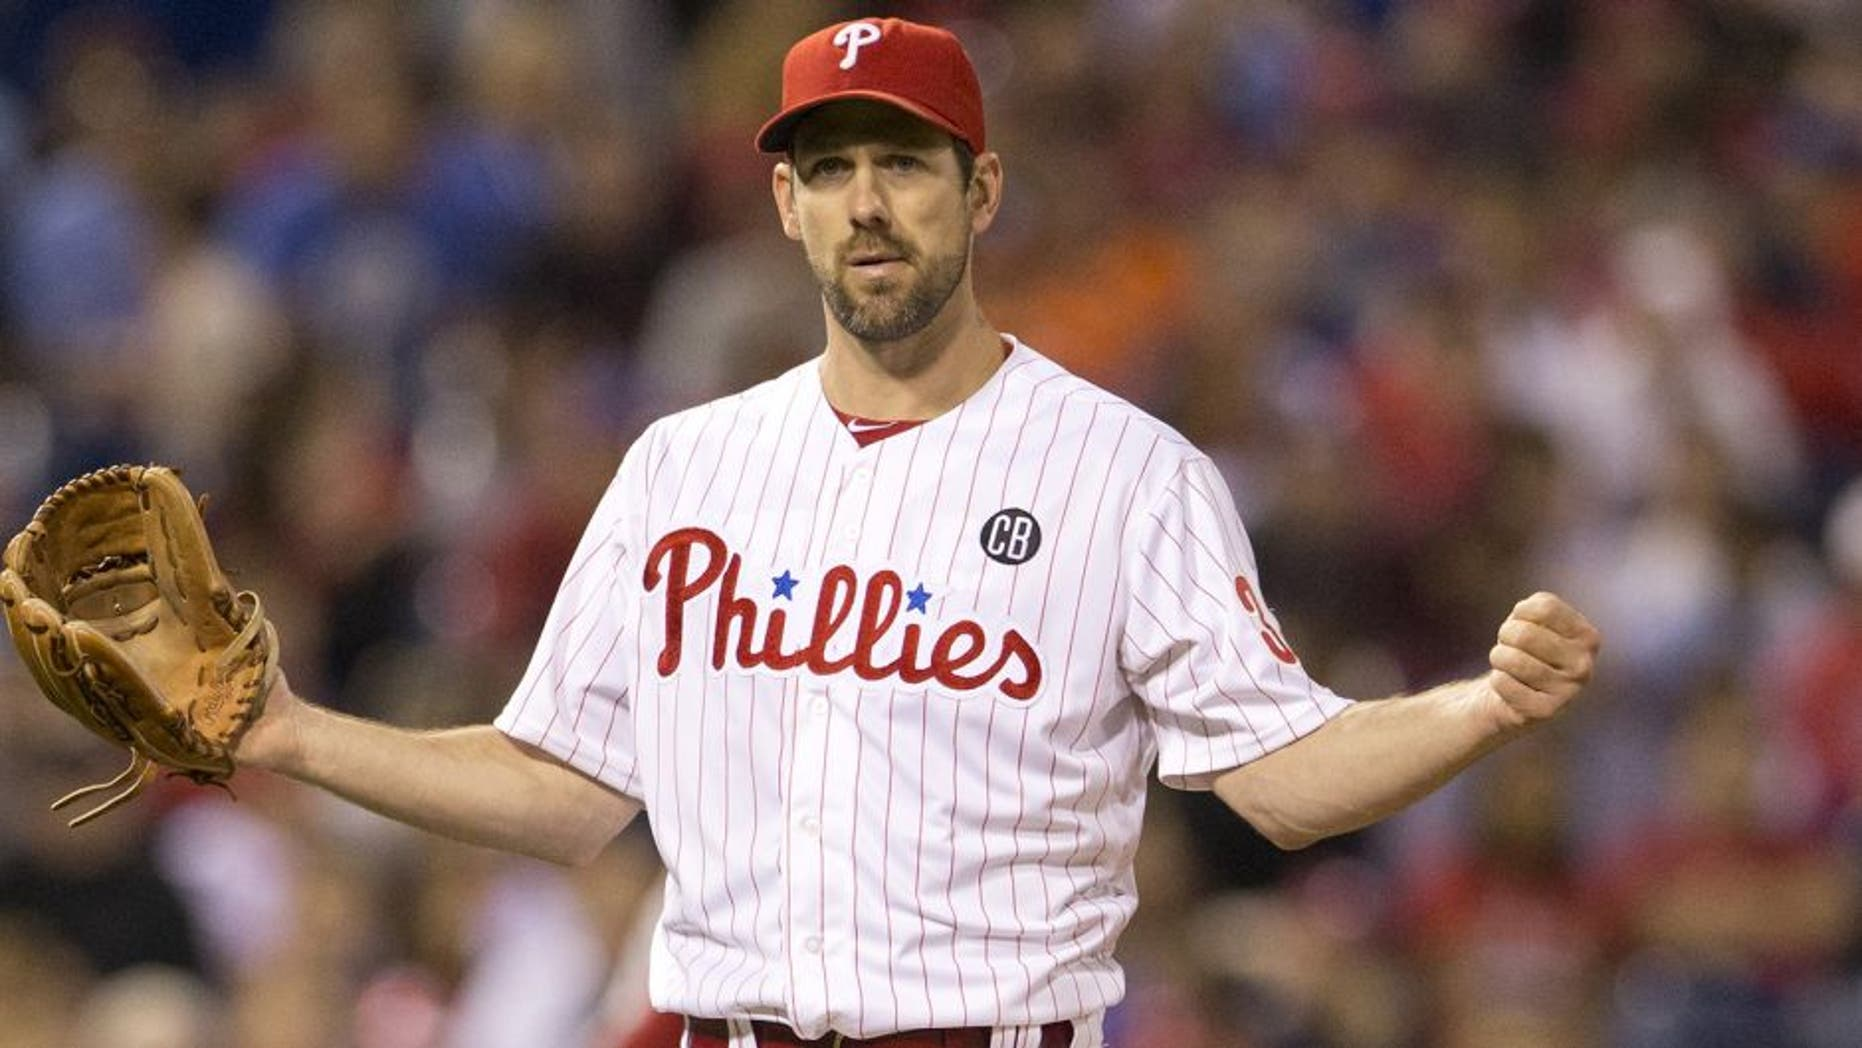 PHILADELPHIA, PA - MAY 13: Pitcher Cliff Lee #33 of the Philadelphia Phillies reacts in the top of the sixth inning against the Los Angeles Angels of Anaheim on May 13, 2014 at Citizens Bank Park in Philadelphia, Pennsylvania. (Photo by Mitchell Leff/Getty Images)